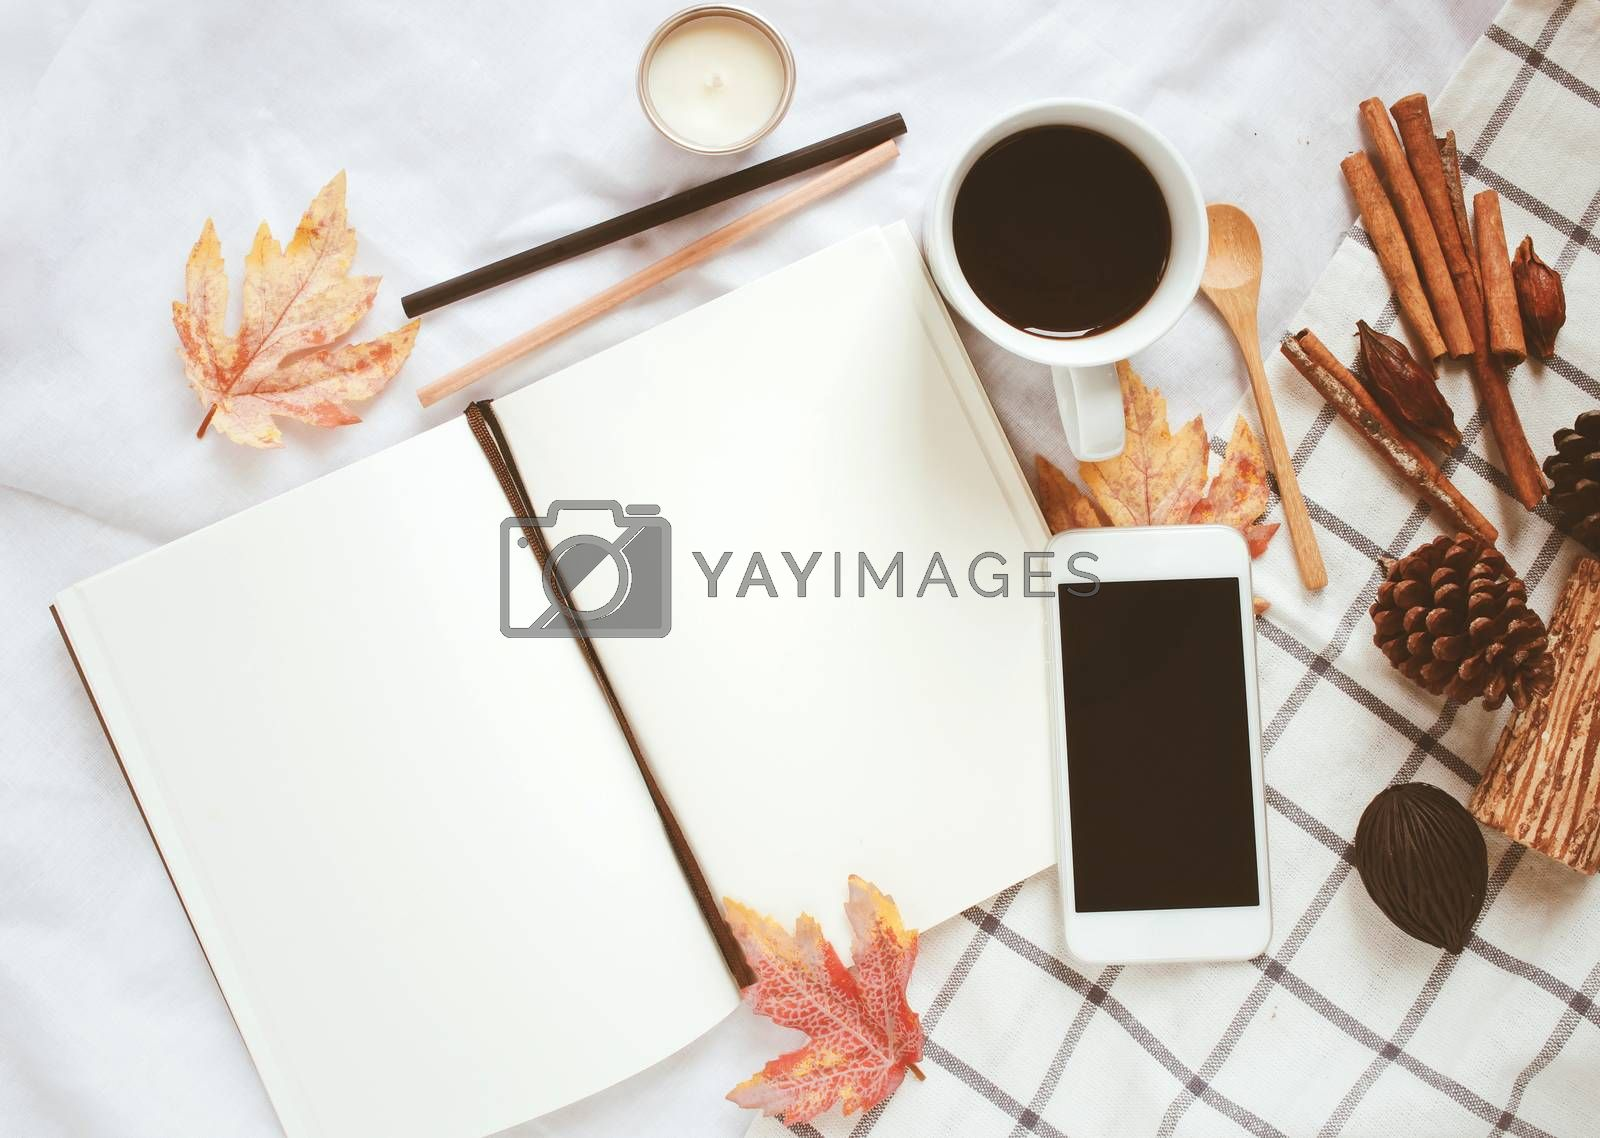 Royalty free image of Autumn lifestyle concept, blank notebook, smartphone and coffee  by nuchylee